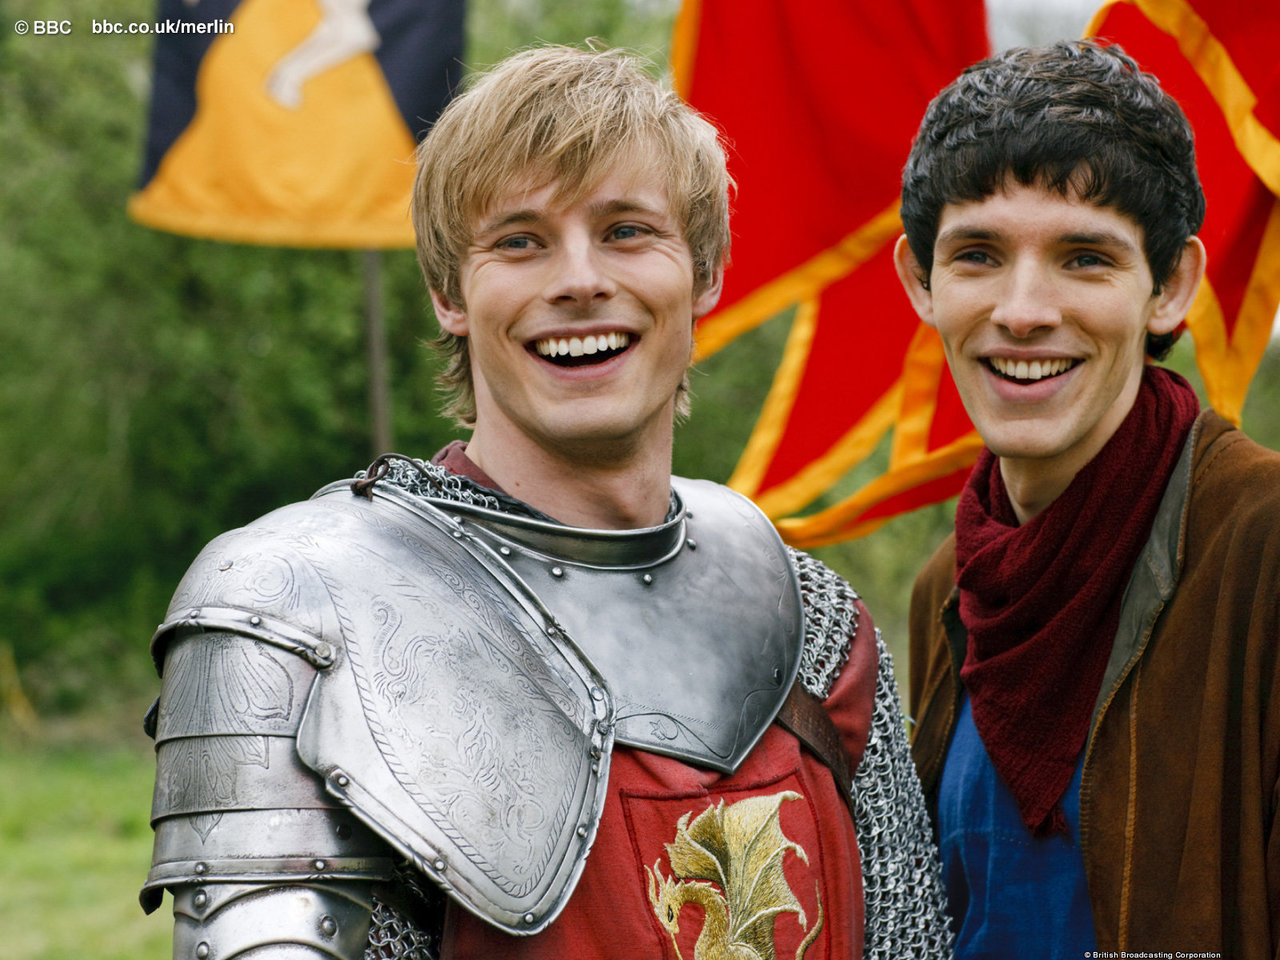 Merlin - Behind the Scenes - Merlin on BBC Photo (10104421